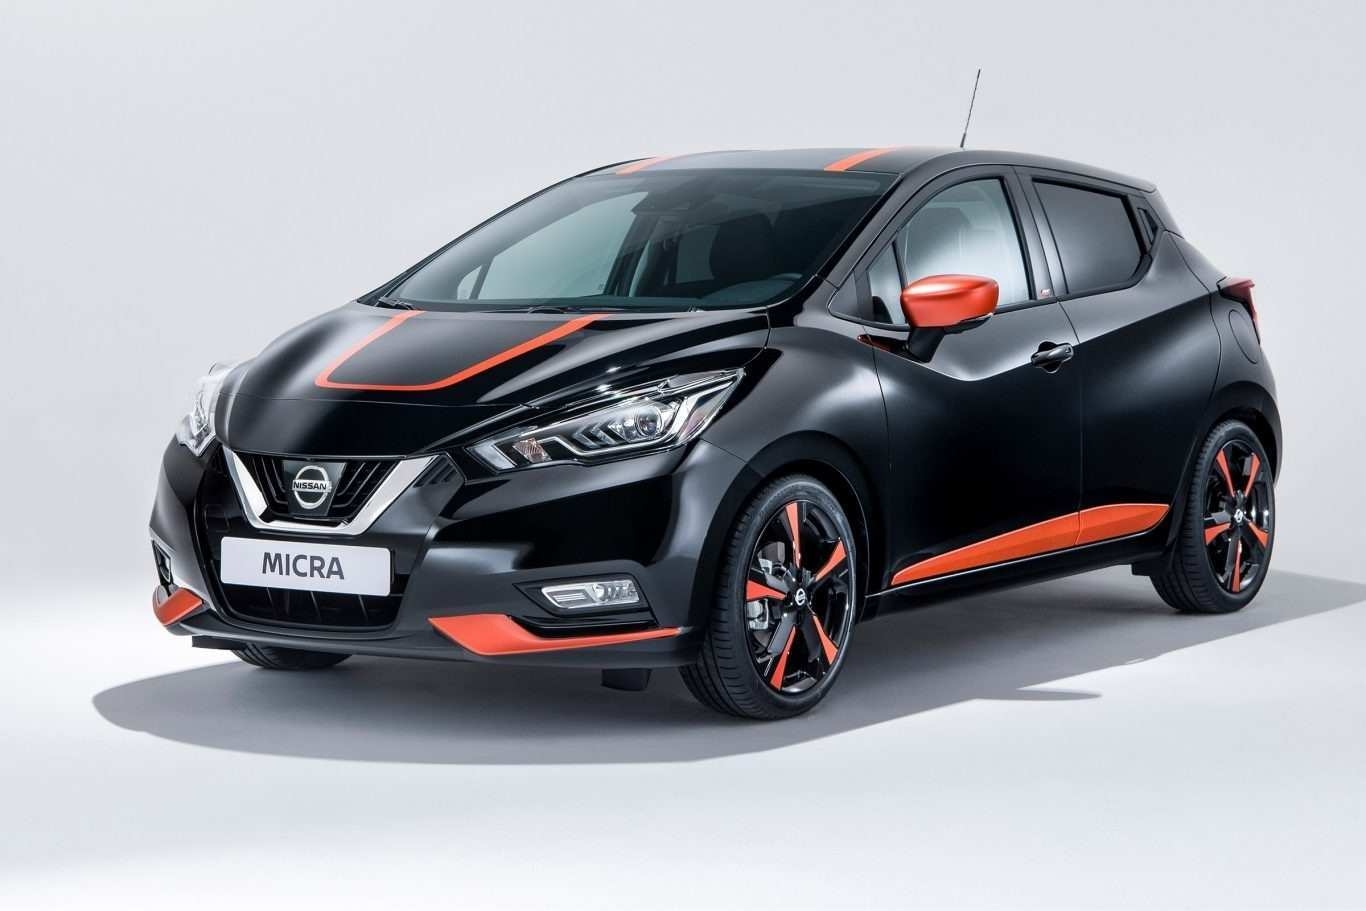 60 Best Review Nissan 2020 Micra Exterior and Interior for Nissan 2020 Micra